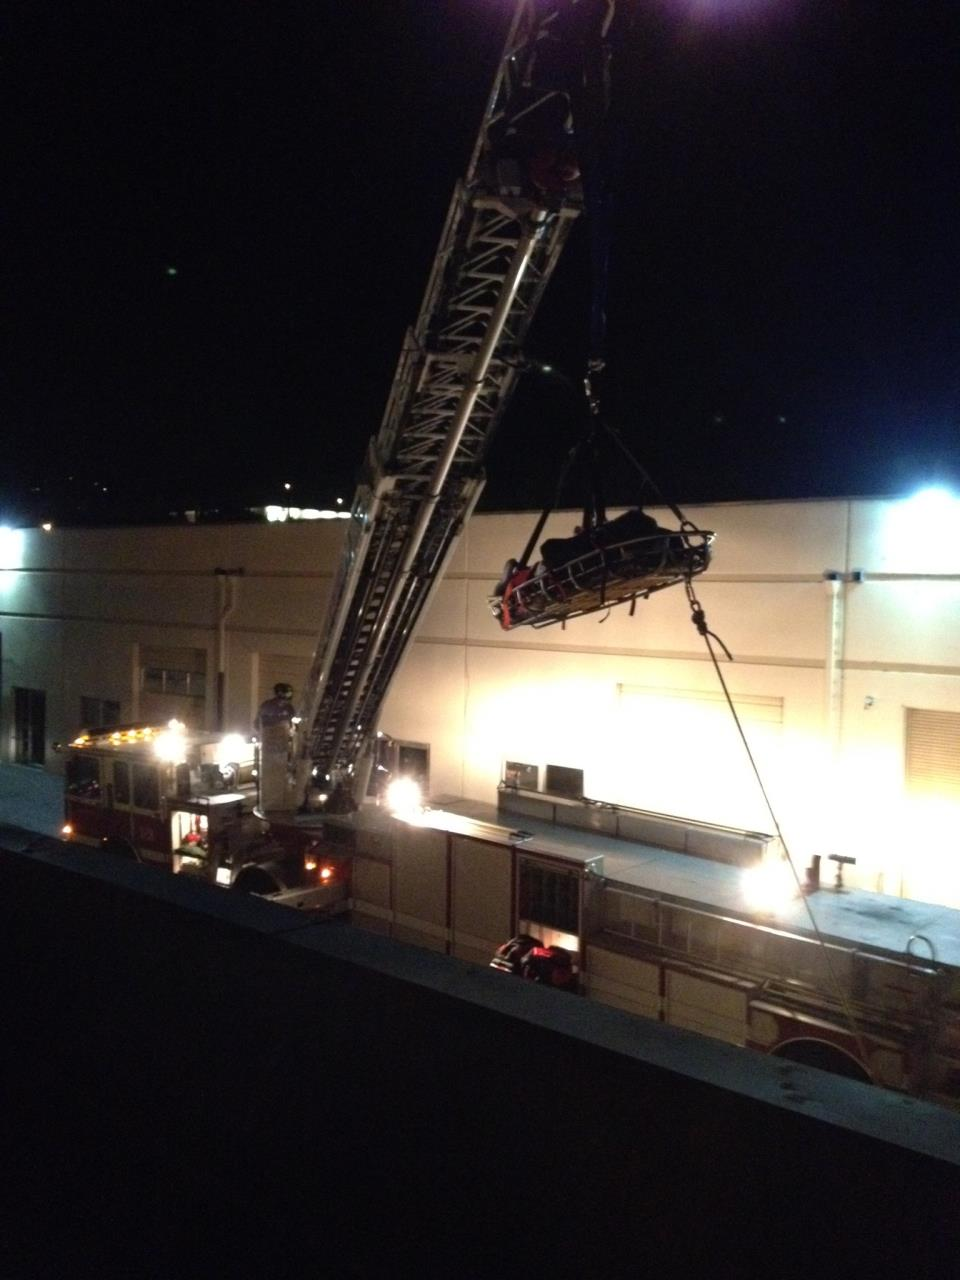 Assault Suspect Found Hiding on Roof of Belmont Business